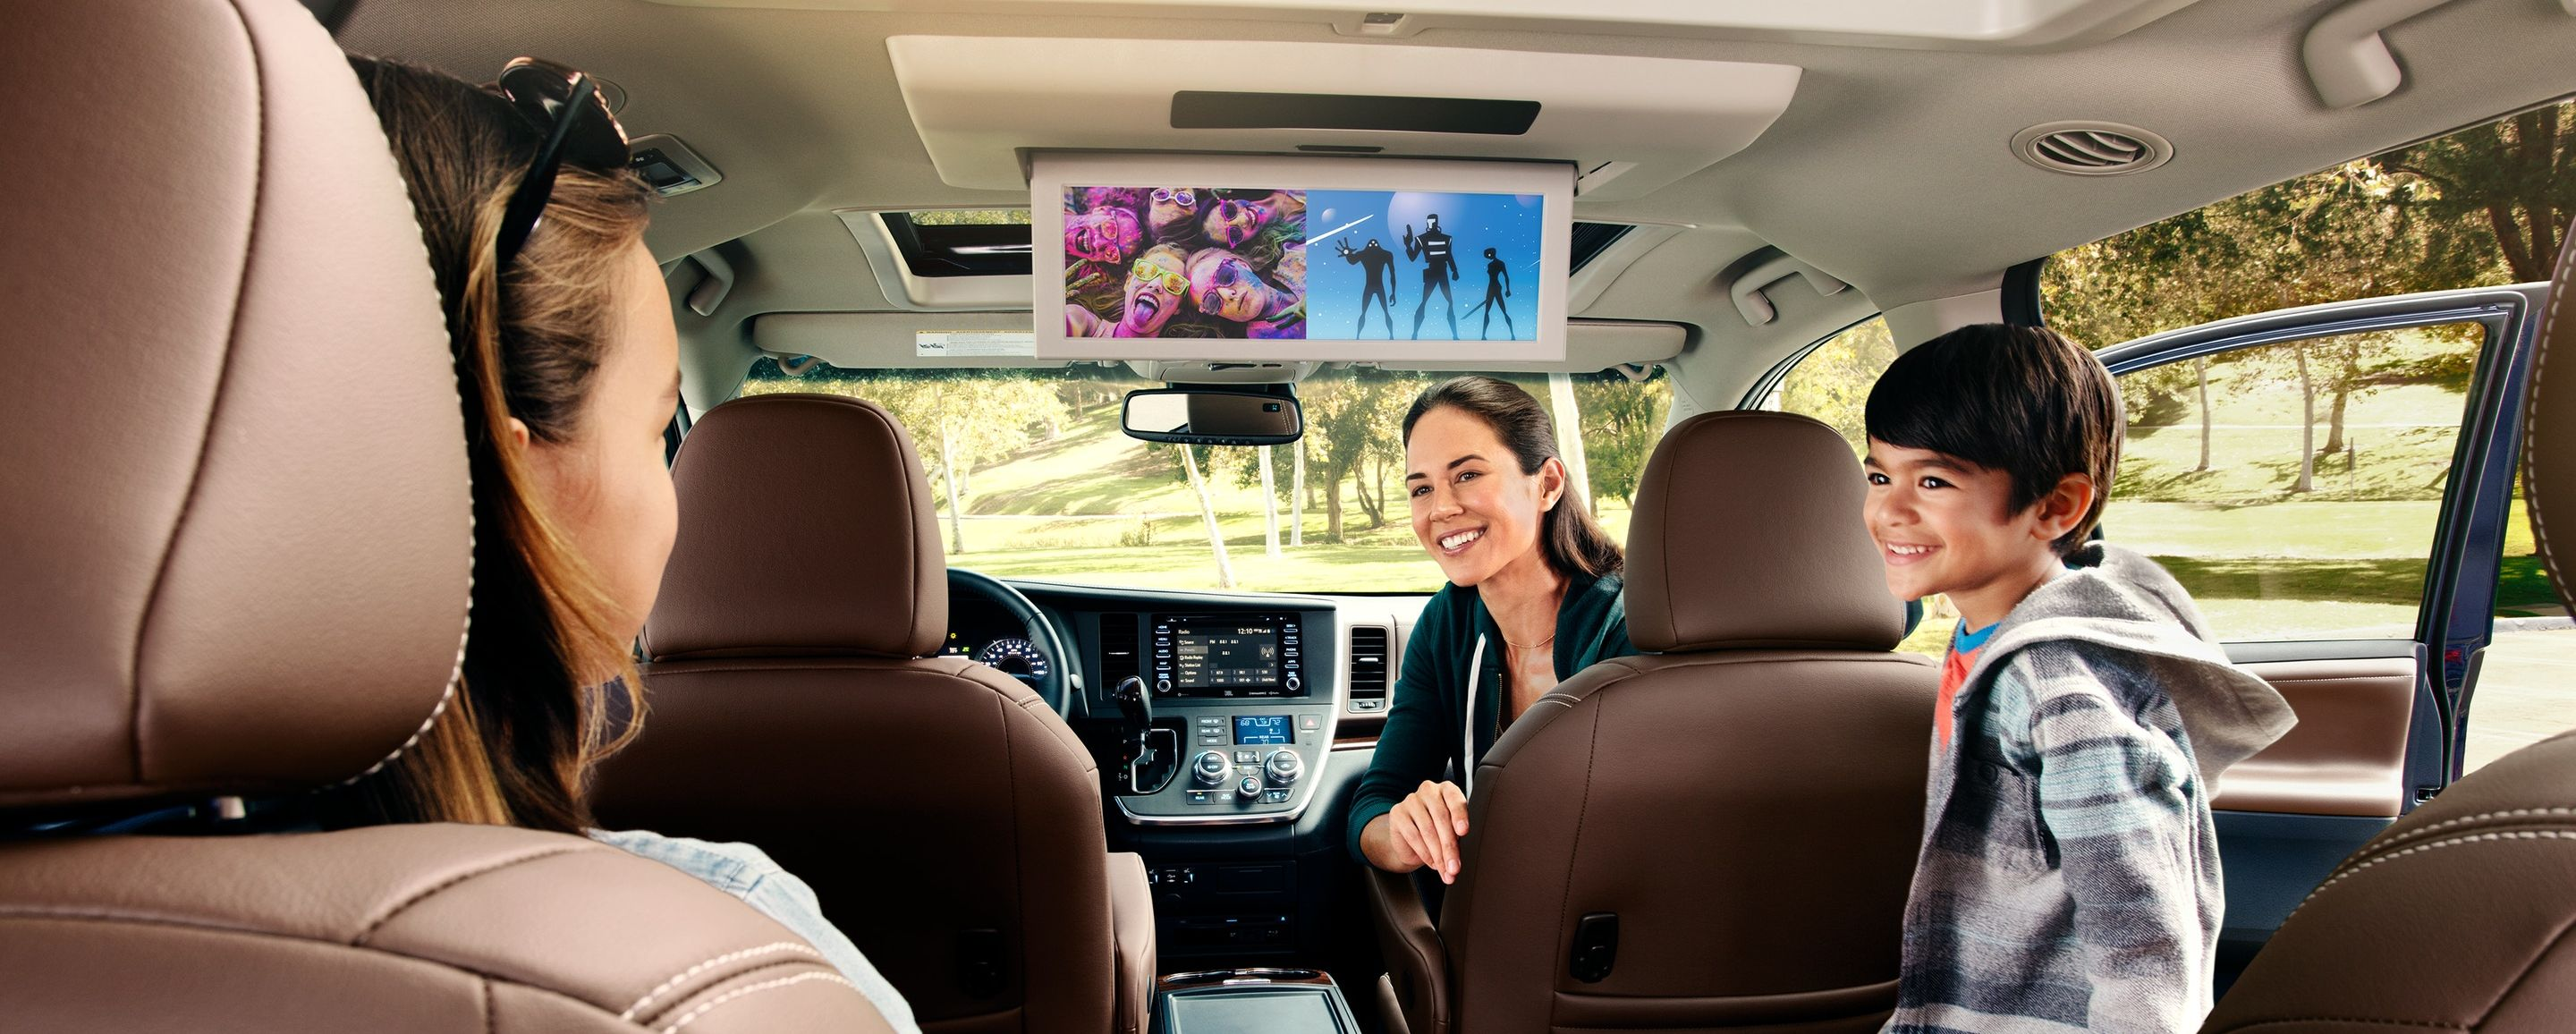 The Secure Cabin of the 2020 Sienna